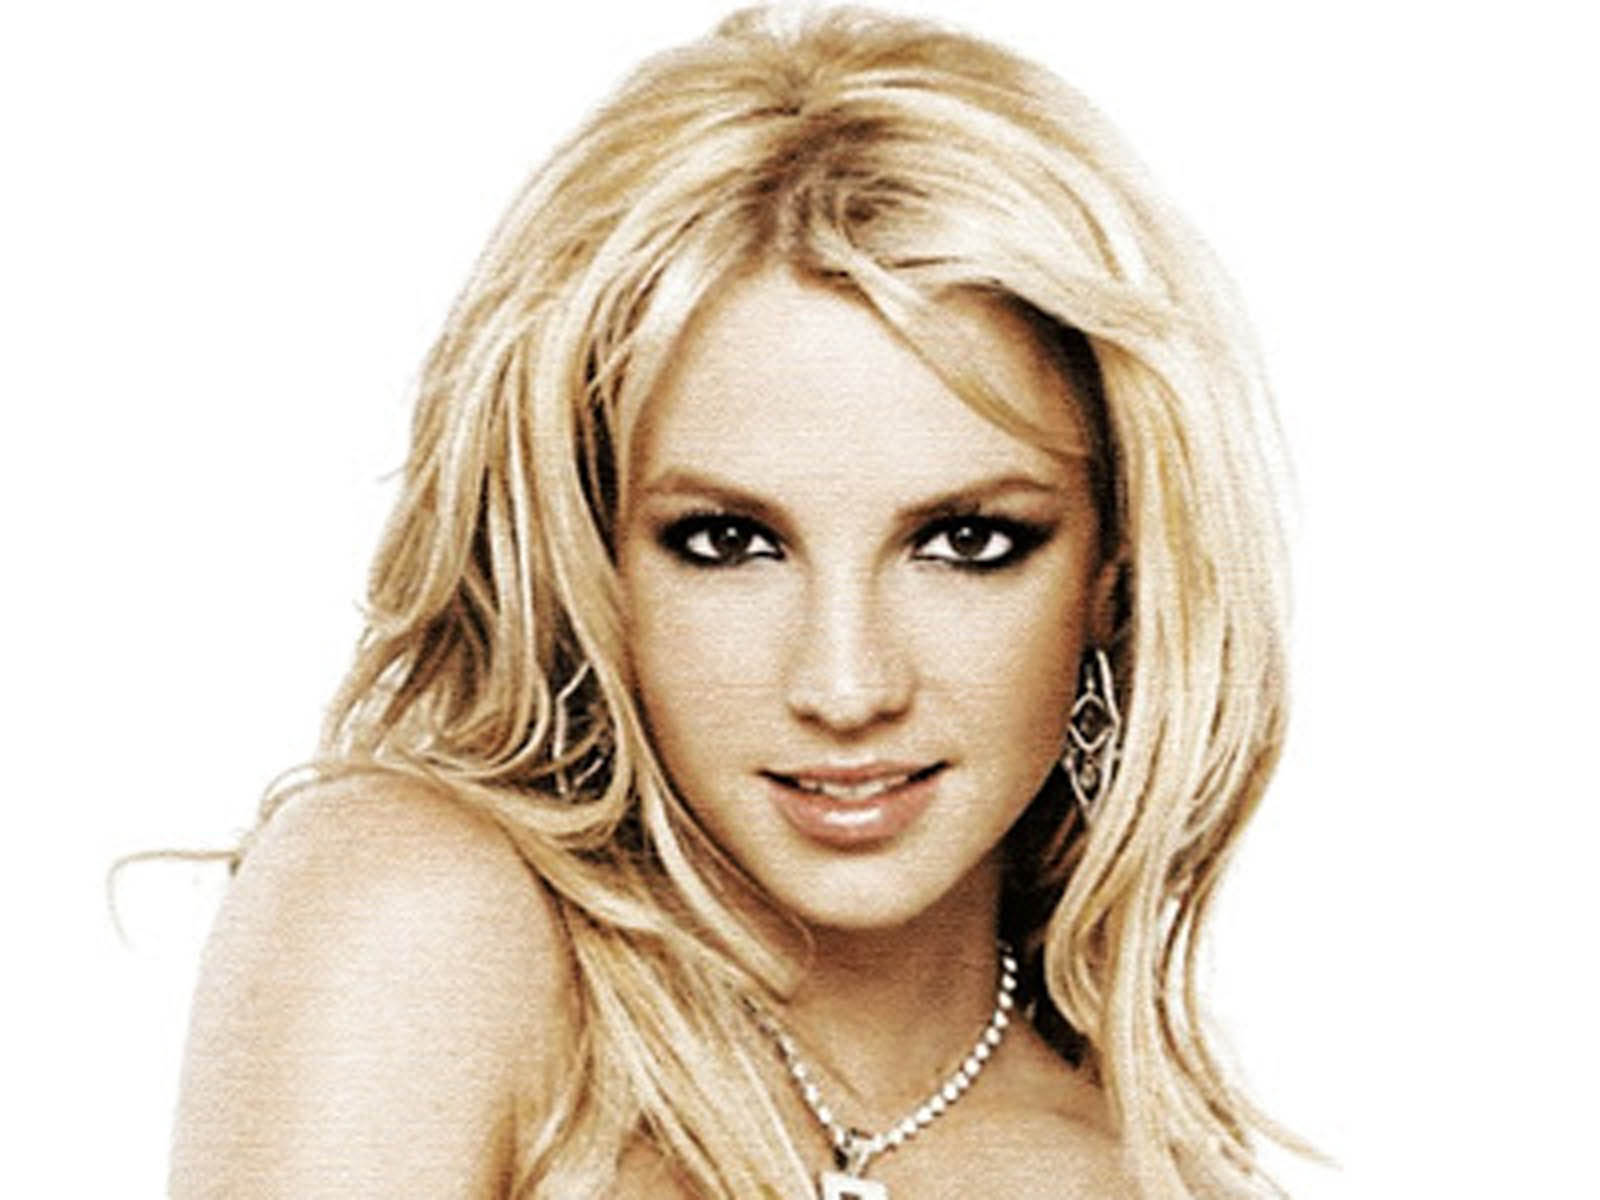 Britney Spears Wallpapers | Tops Wallpapers Britney Spears